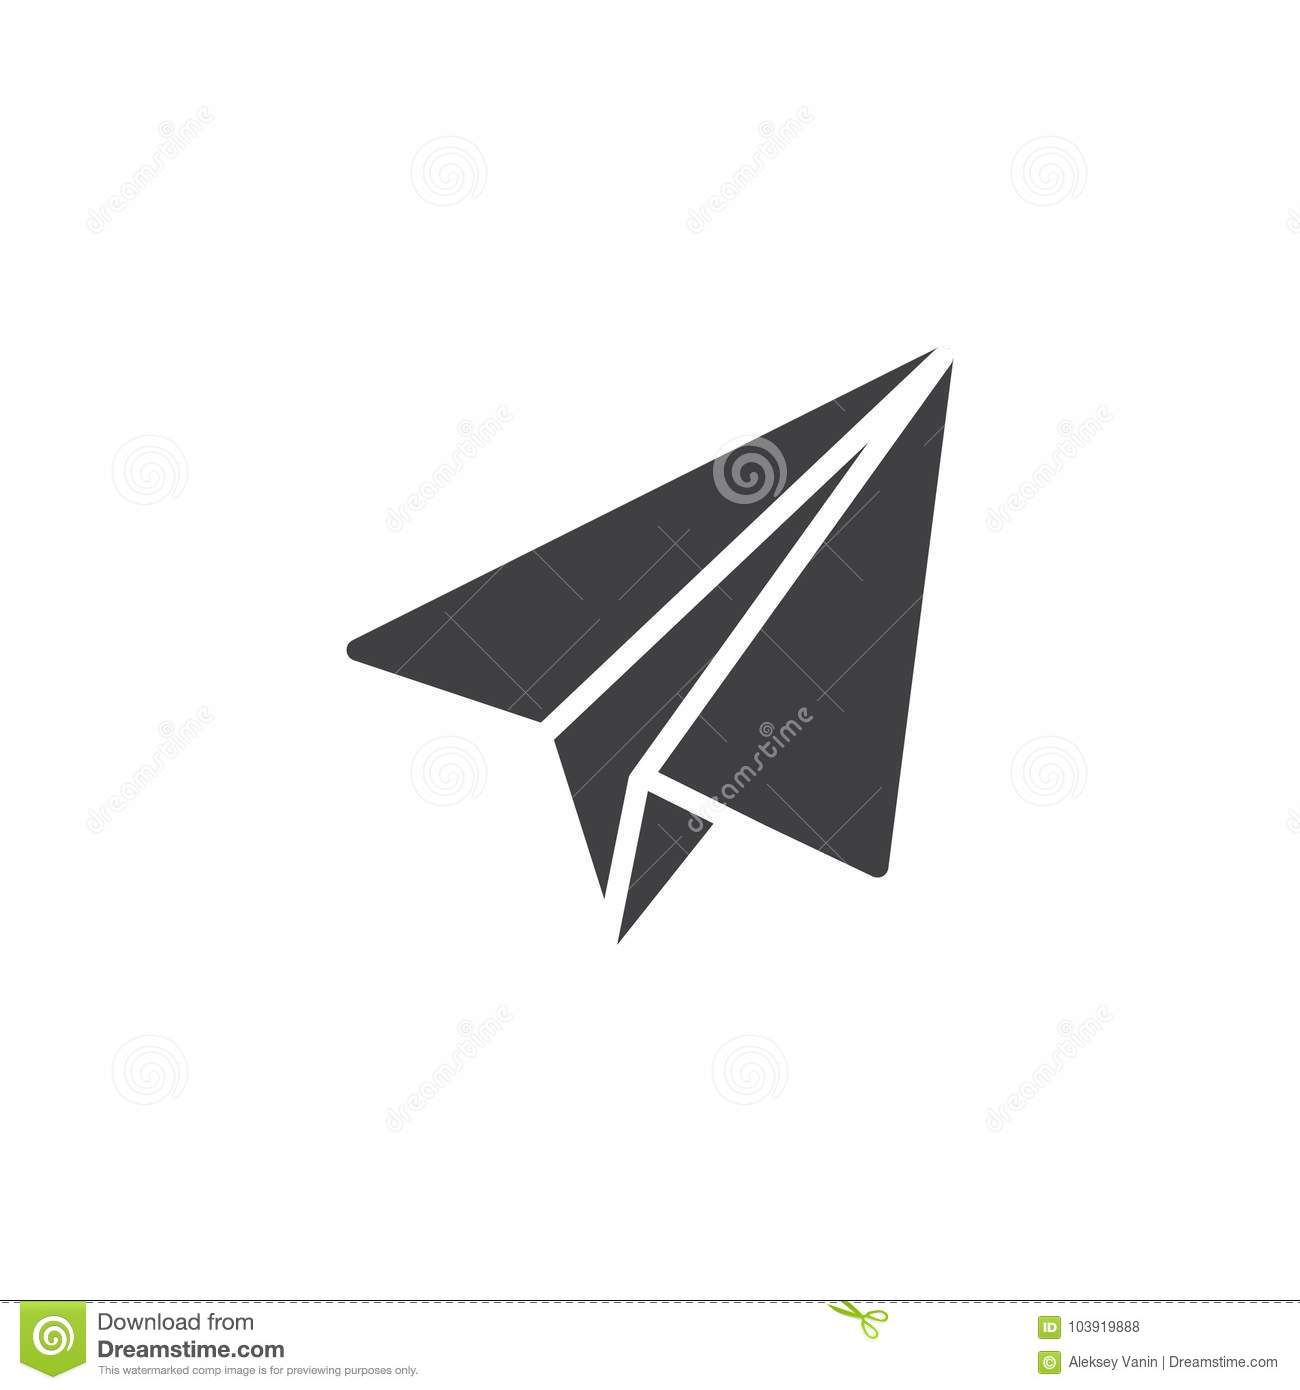 Origami Plane Icon Vector Filled Flat Sign Solid Pictogram Isolated On White Paper Airplane Symbol Logo Illustration